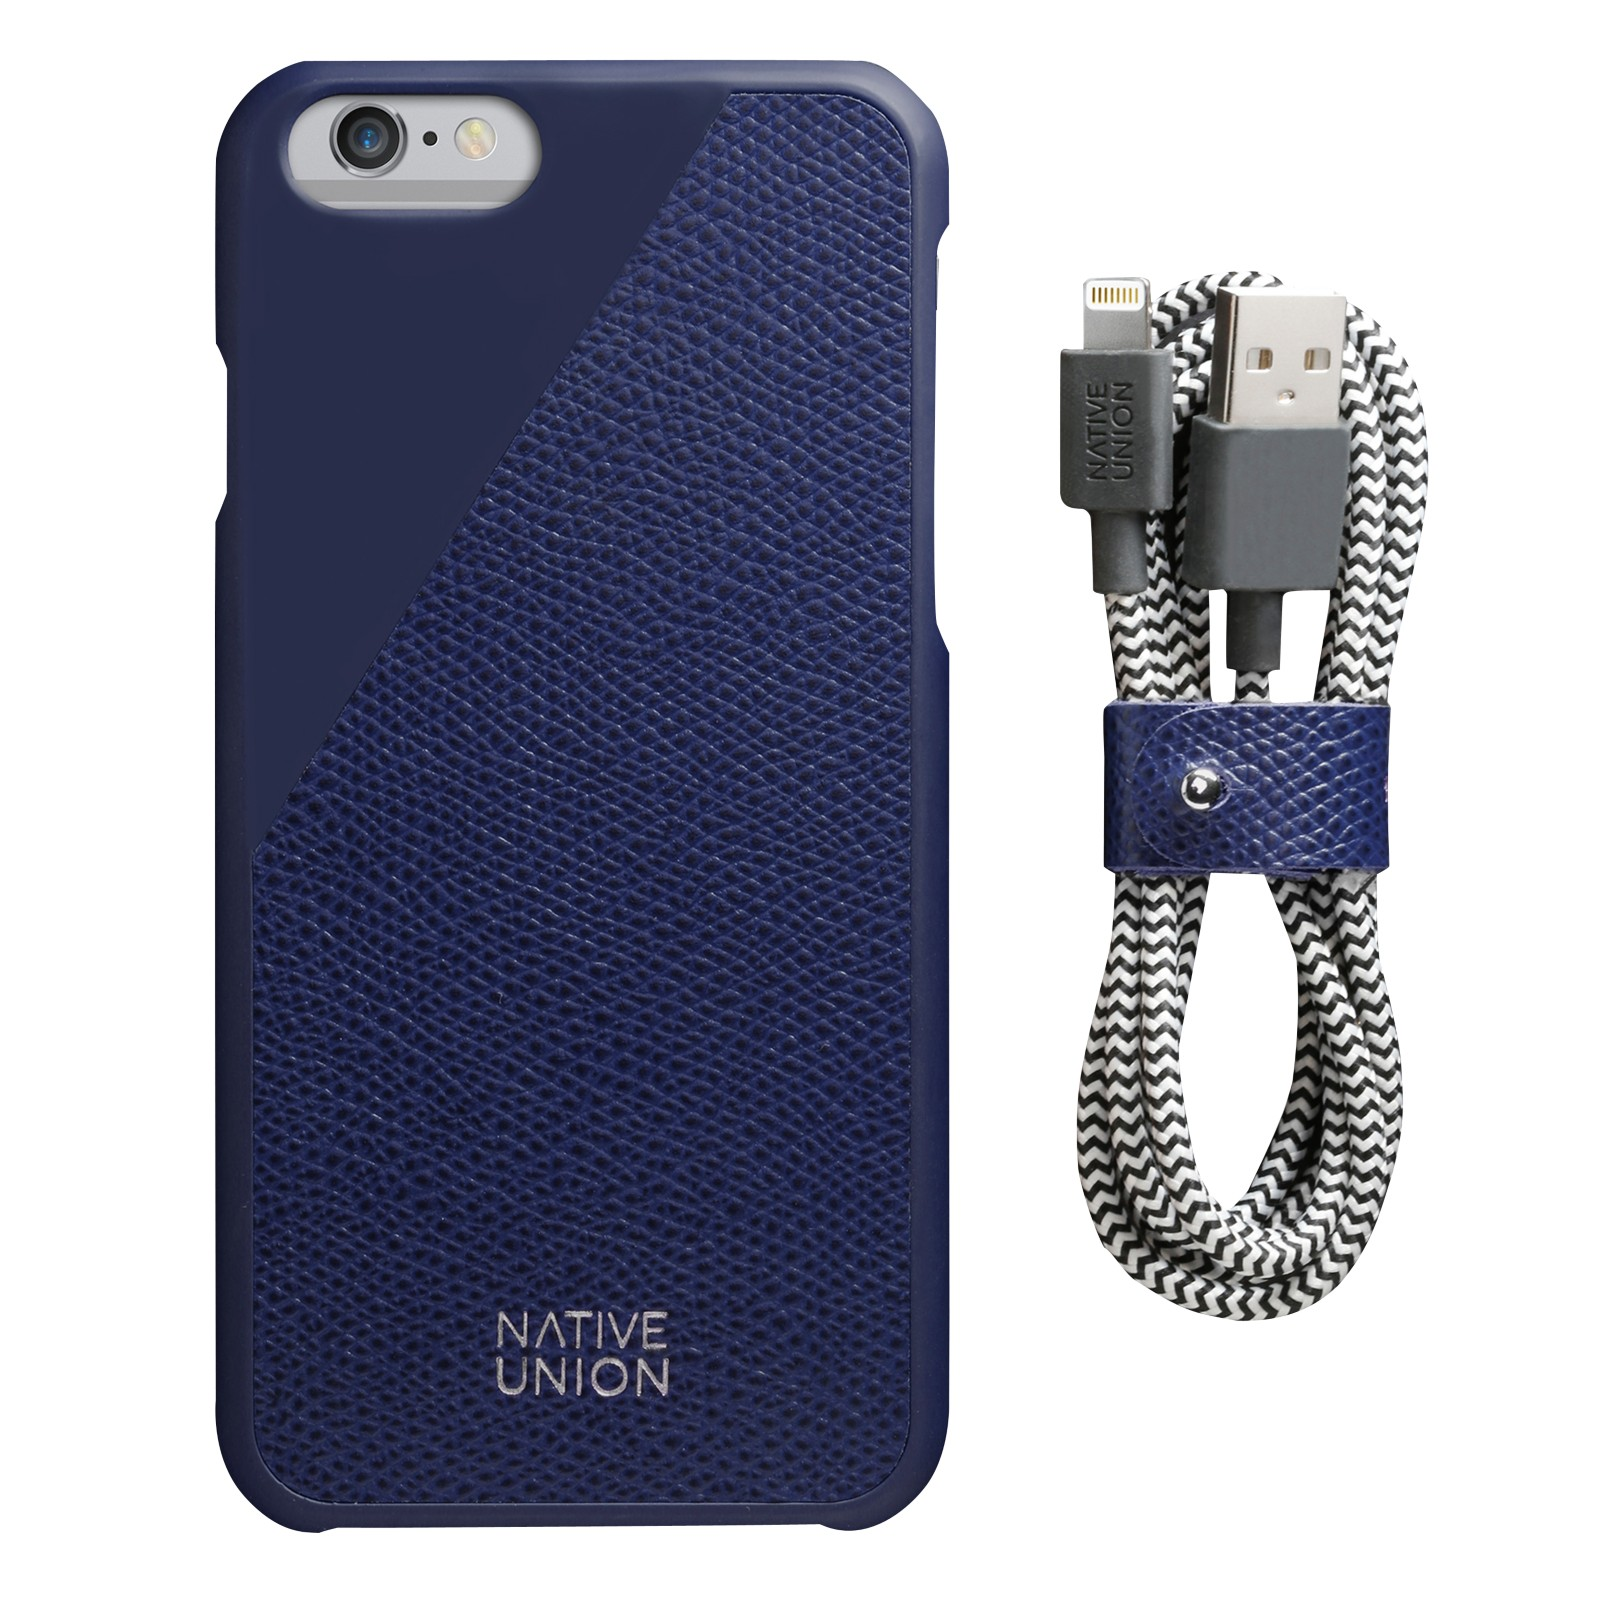 Native Union Clic Leather Case and USB Cable for iPhone 6/6s Navy